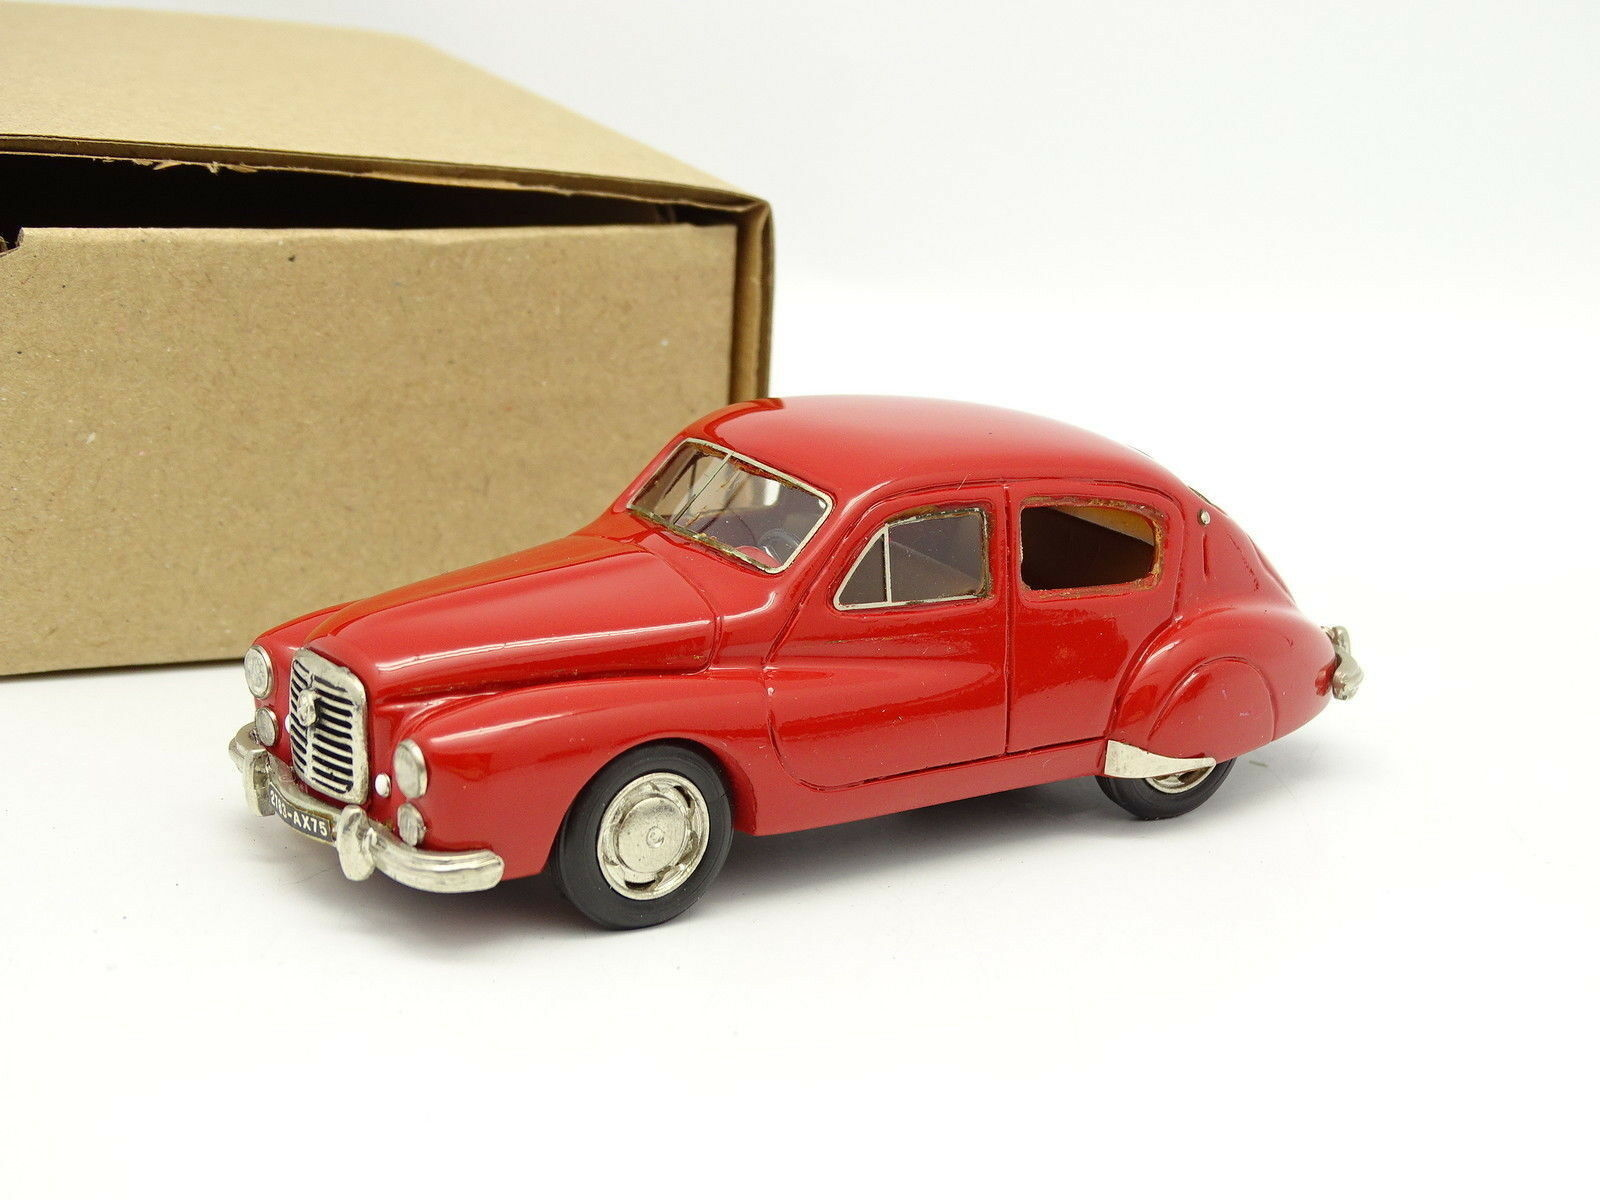 But Collection Brianza Resin 1 43 - Hotchkiss Gregory 1952 Red